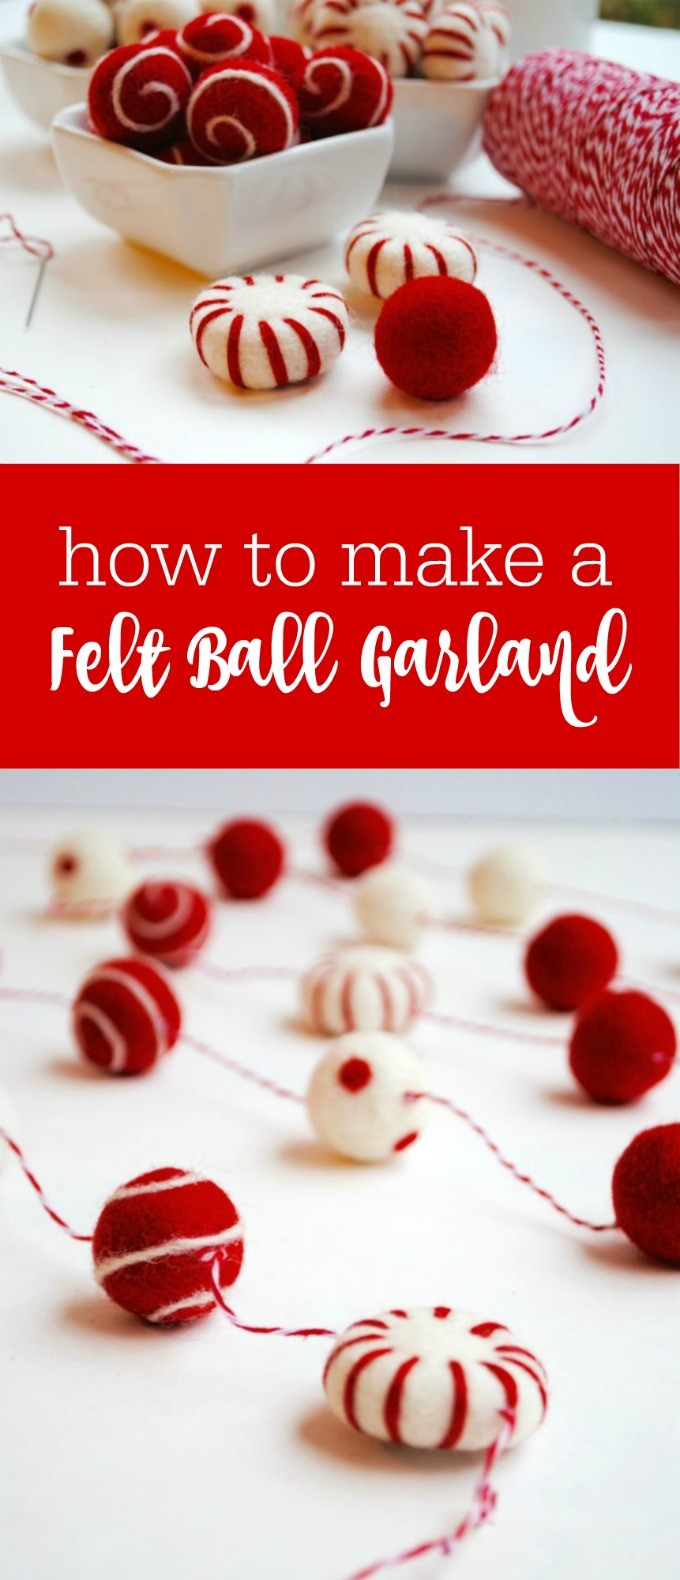 How to make a felt ball garland by The Party Teacher